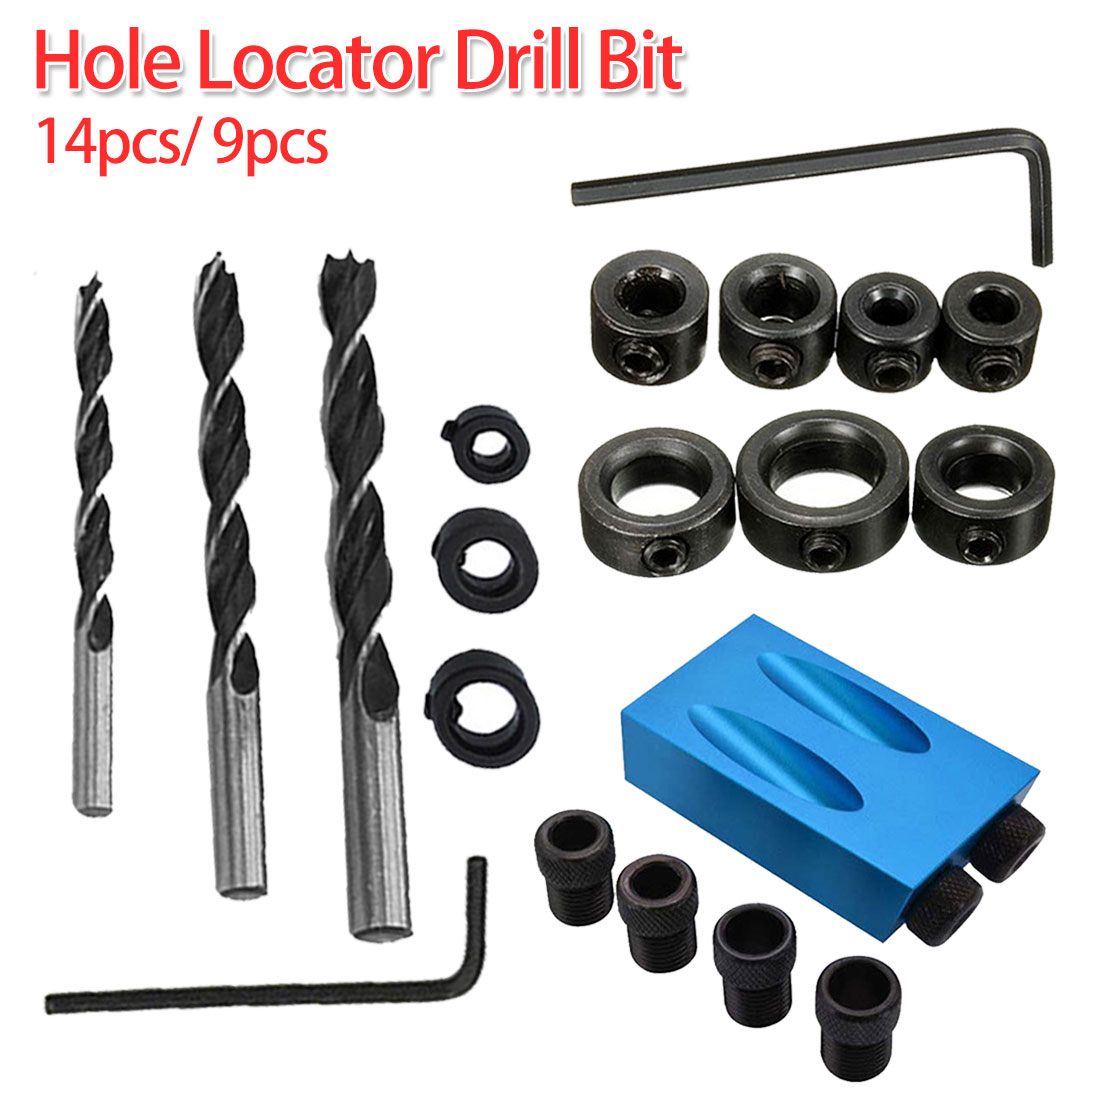 15 Degree 14pcs/ 9pcs Drilling Holes Guide Oblique Hole Locator Positioner Drilling Bits Jig Clamp Woodworking Kit